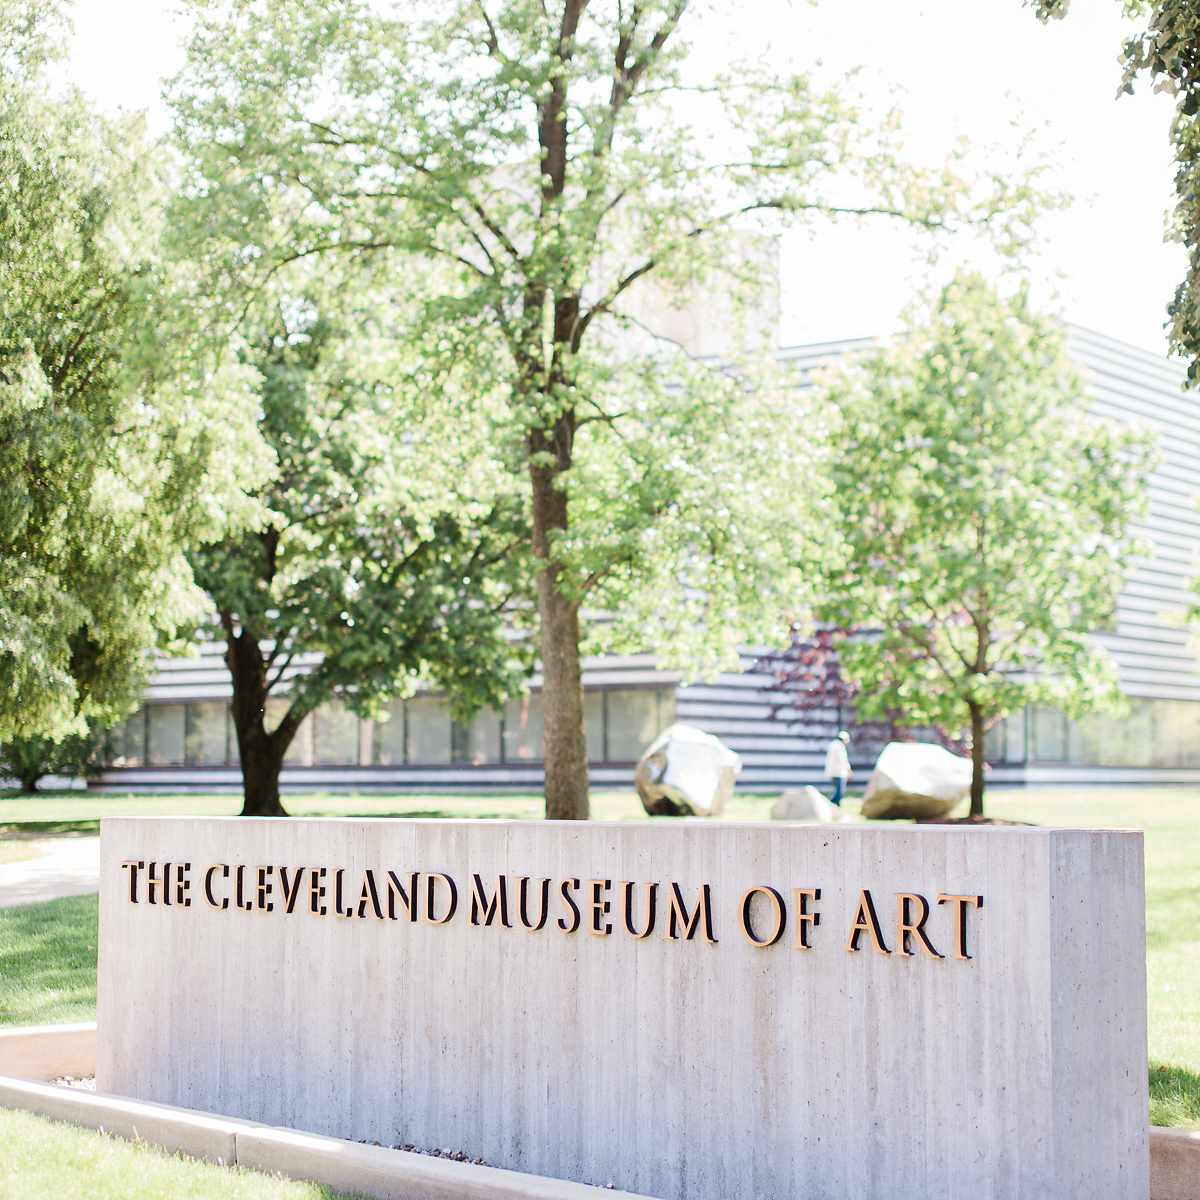 Cleveland museum of art sign